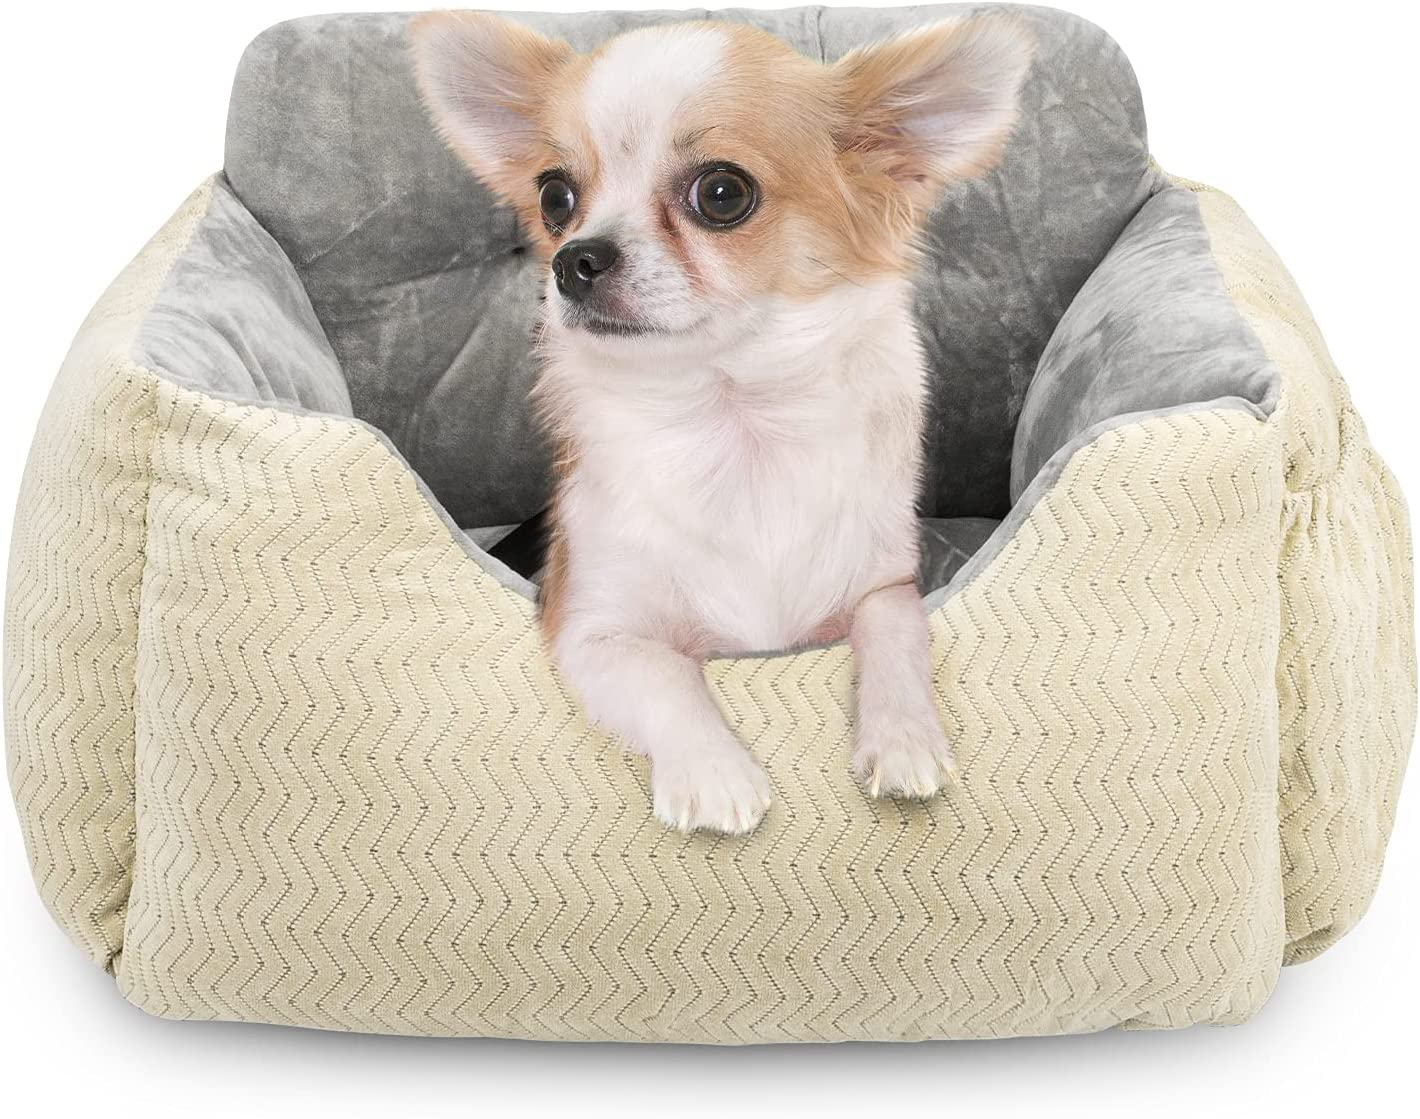 AIPERRO Dog Daily bargain sale Car Seat Soft Pet Pup Medium for Booster Dogs Small Ranking TOP10